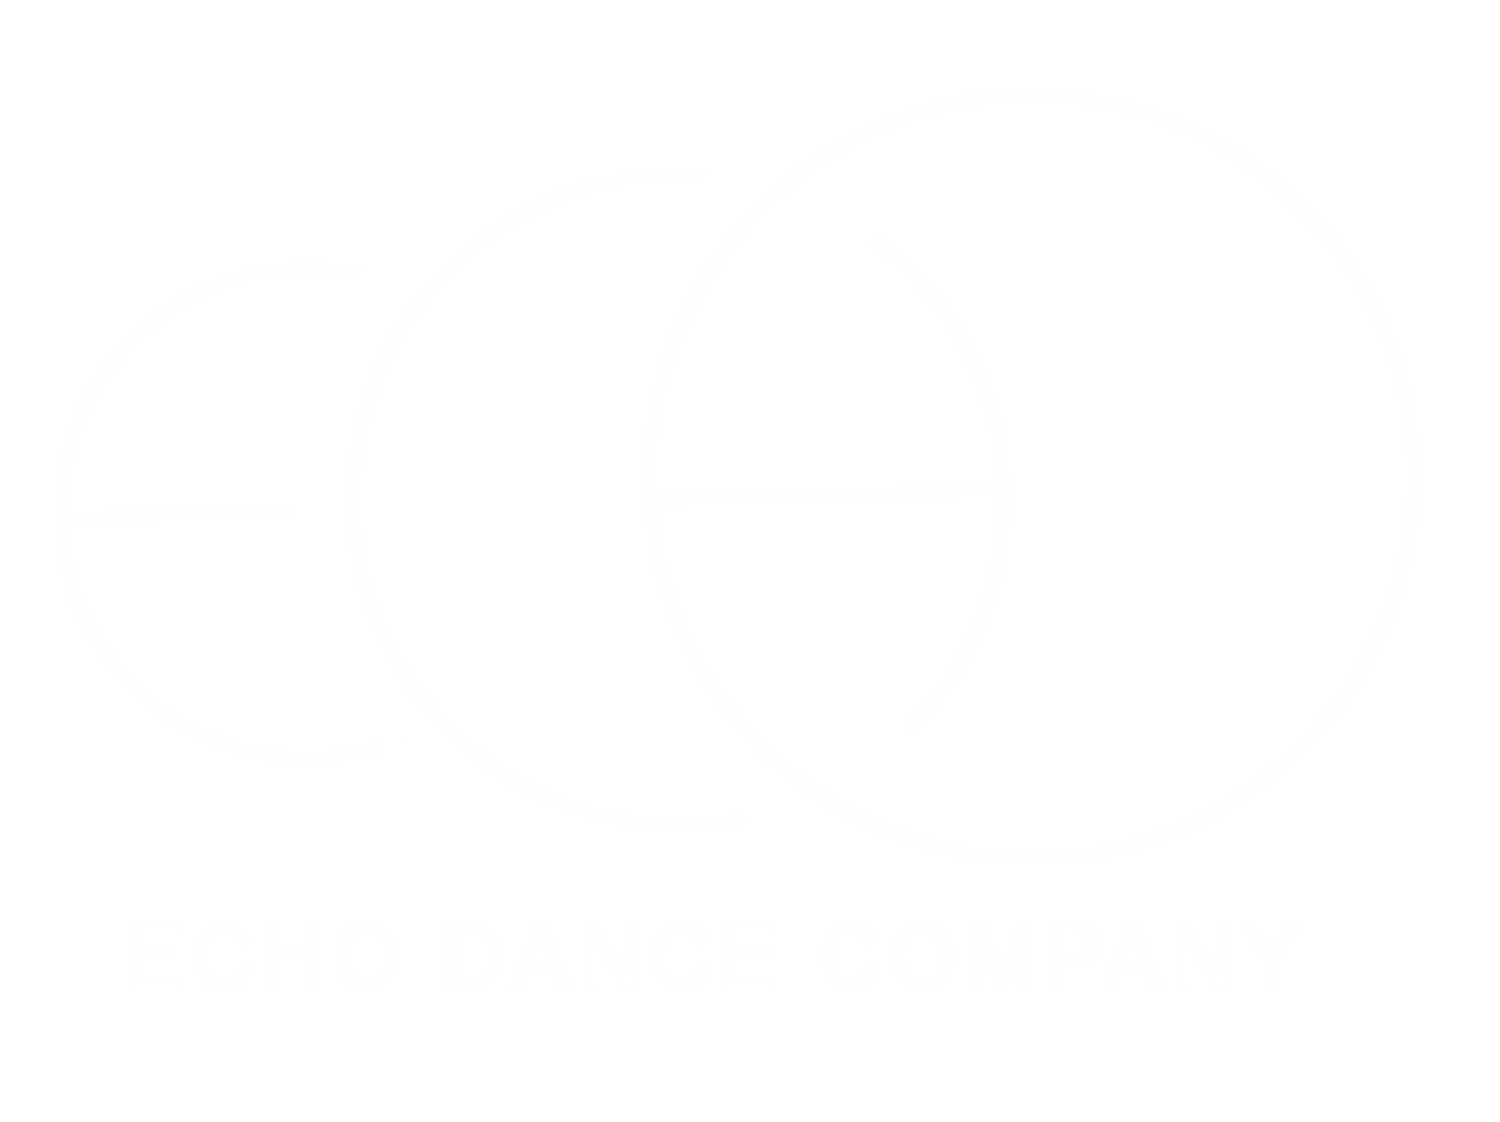 Echo Dance Company